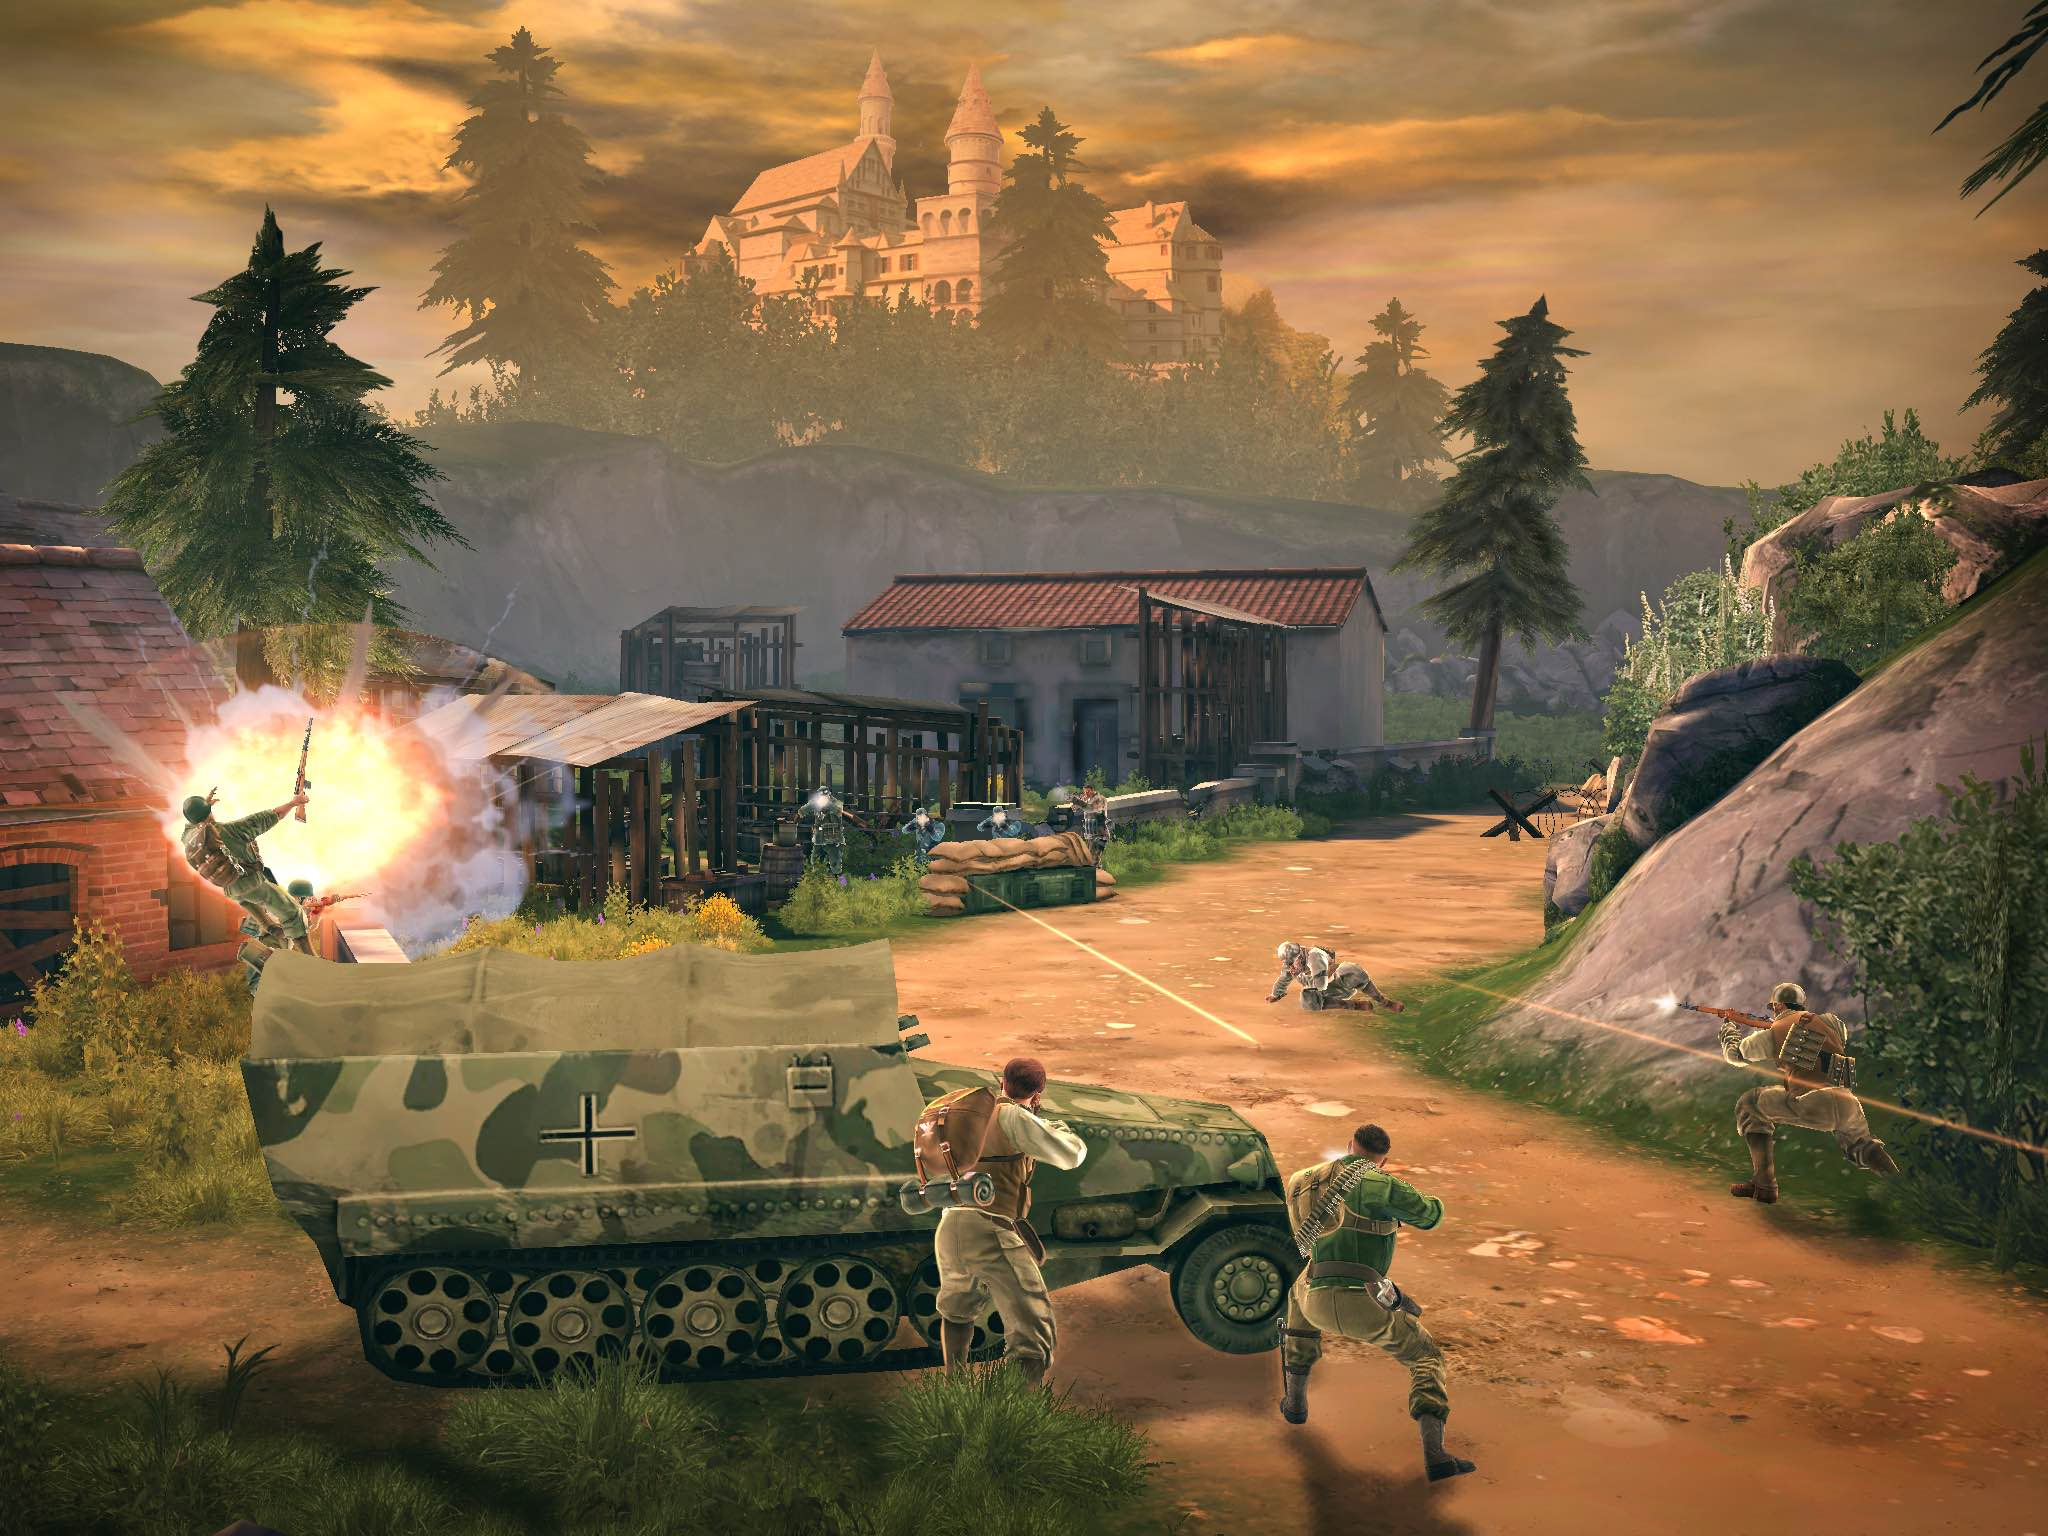 Brothers in Arms 3 for iOS screenshot 004